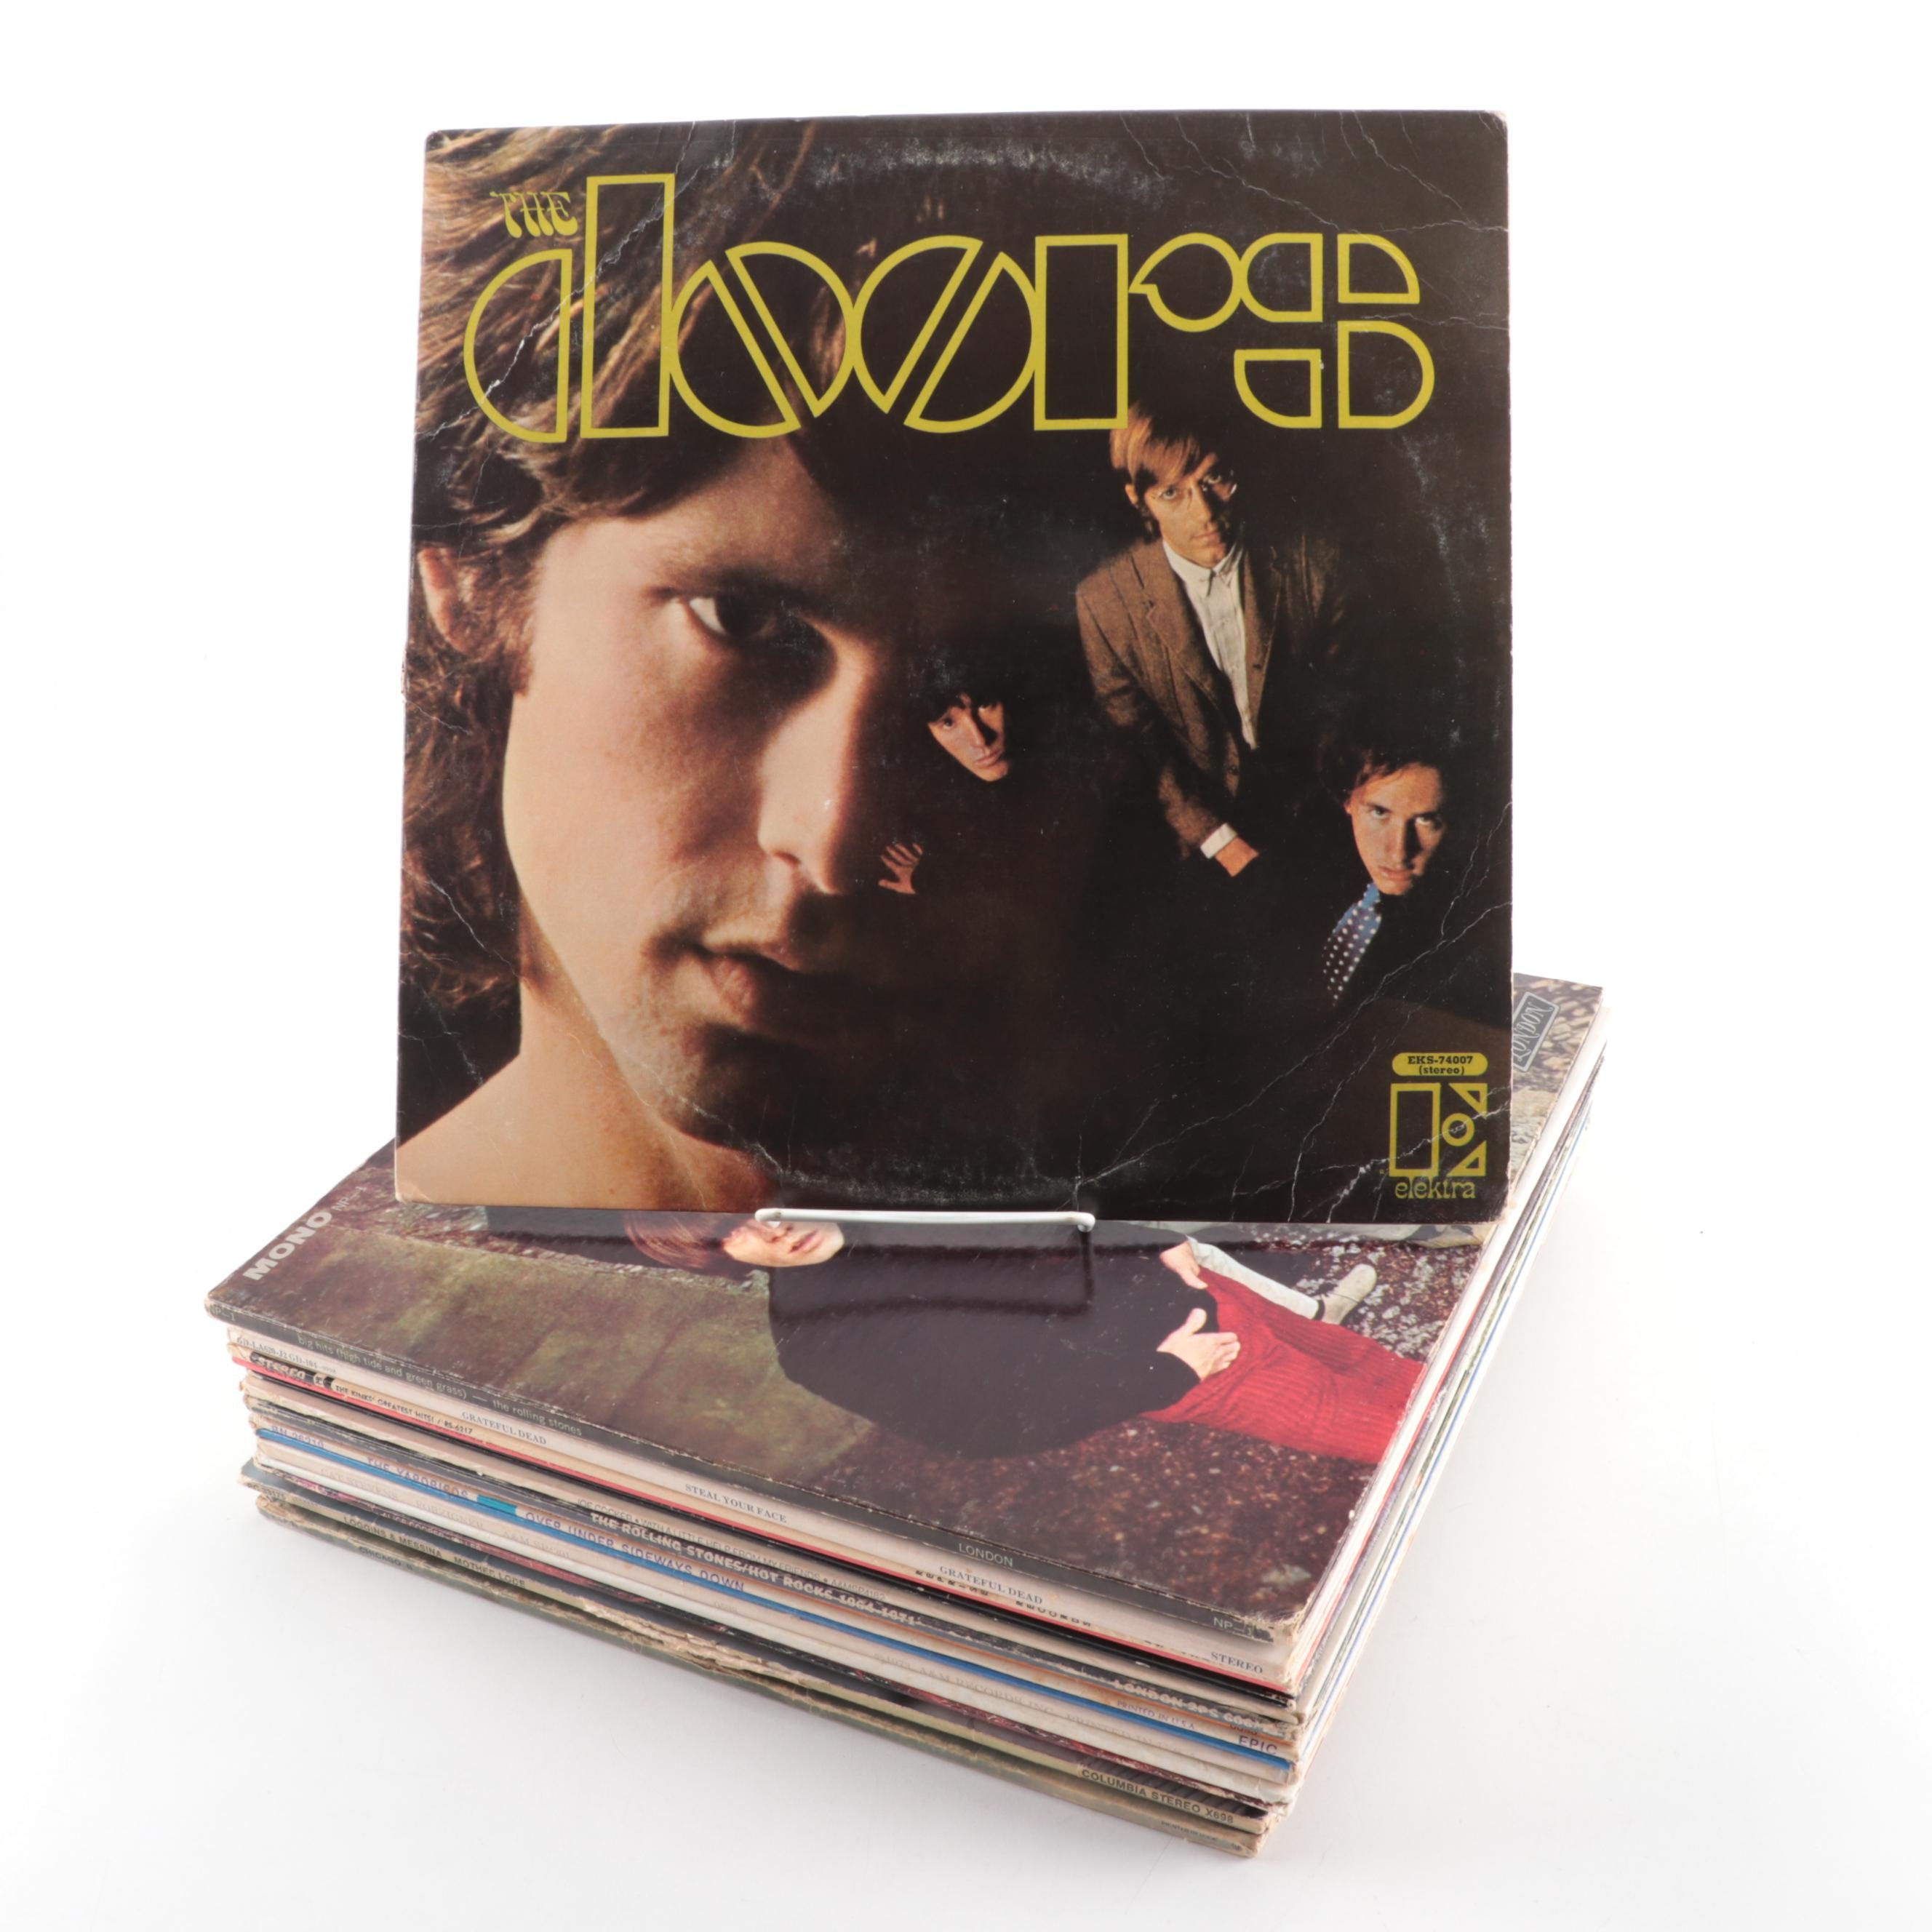 The Doors, Grateful Dead, The Rolling Stones, The Kinks and Other Rock Records